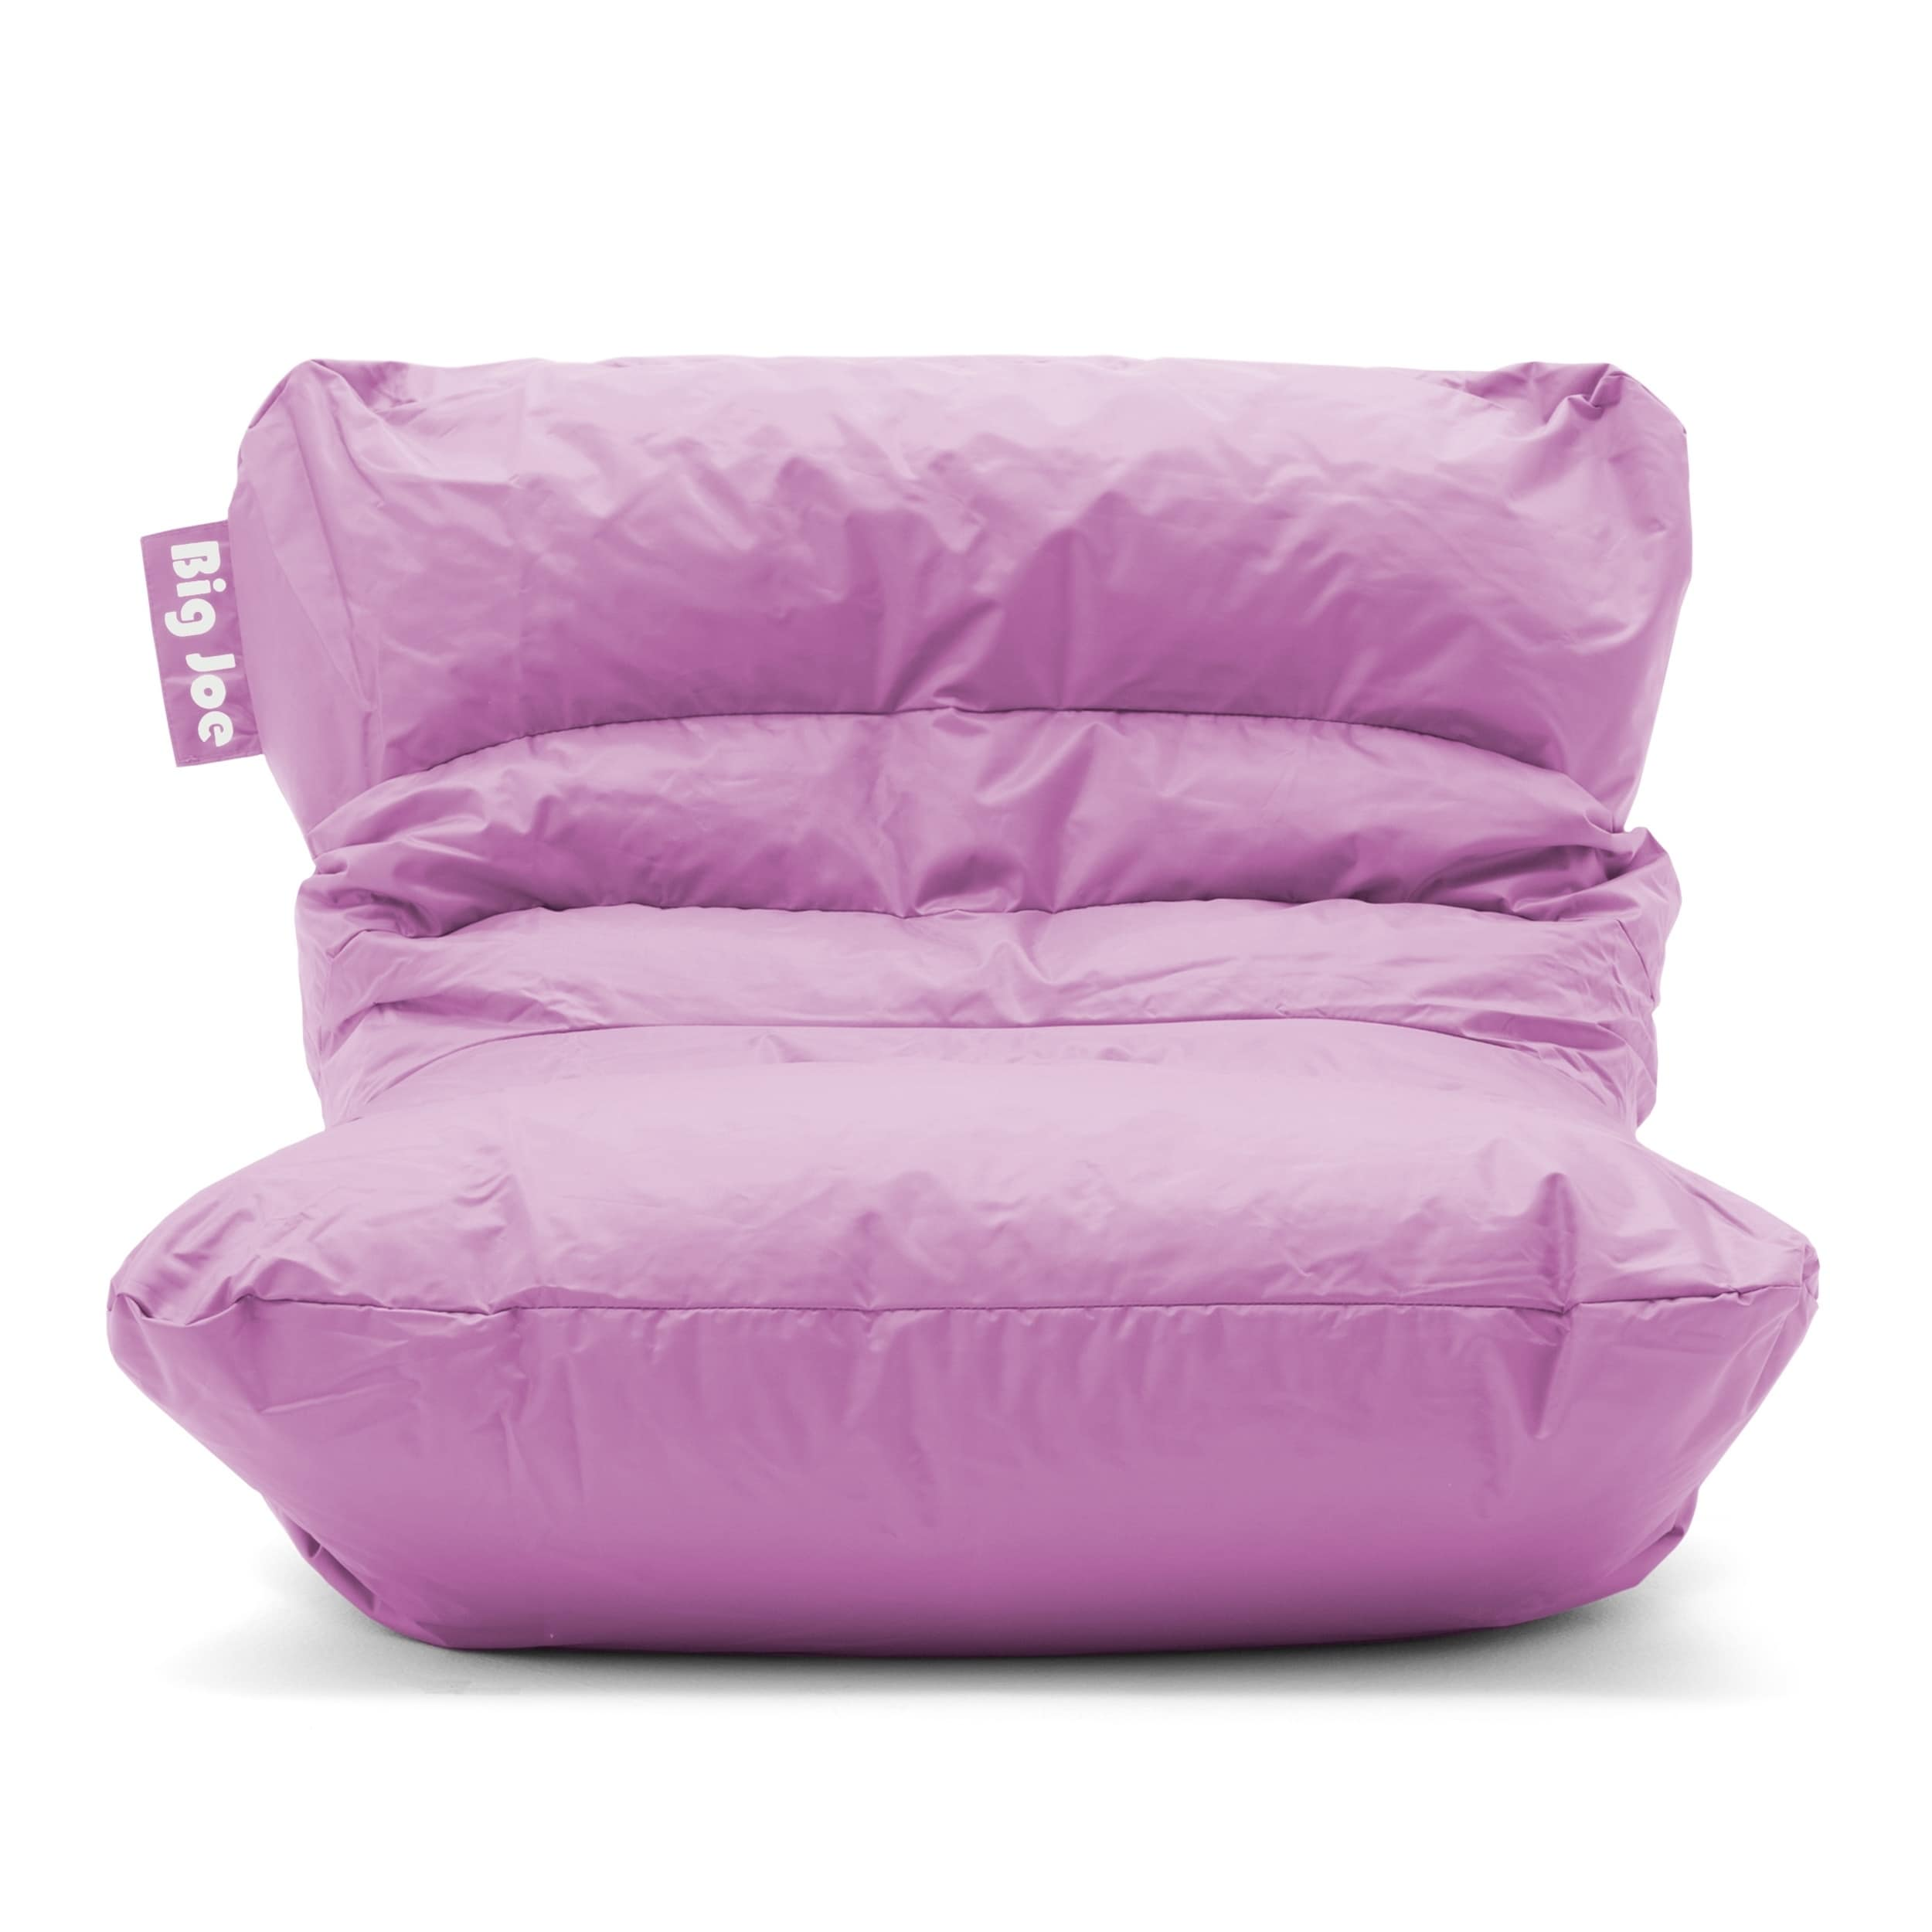 Shop Big Joe Roma Bean Bag Chair SmartMax - Free Shipping Today - Overstock.com - 16257655  sc 1 st  Overstock.com : big joe bean bag chair pink - Cheerinfomania.Com